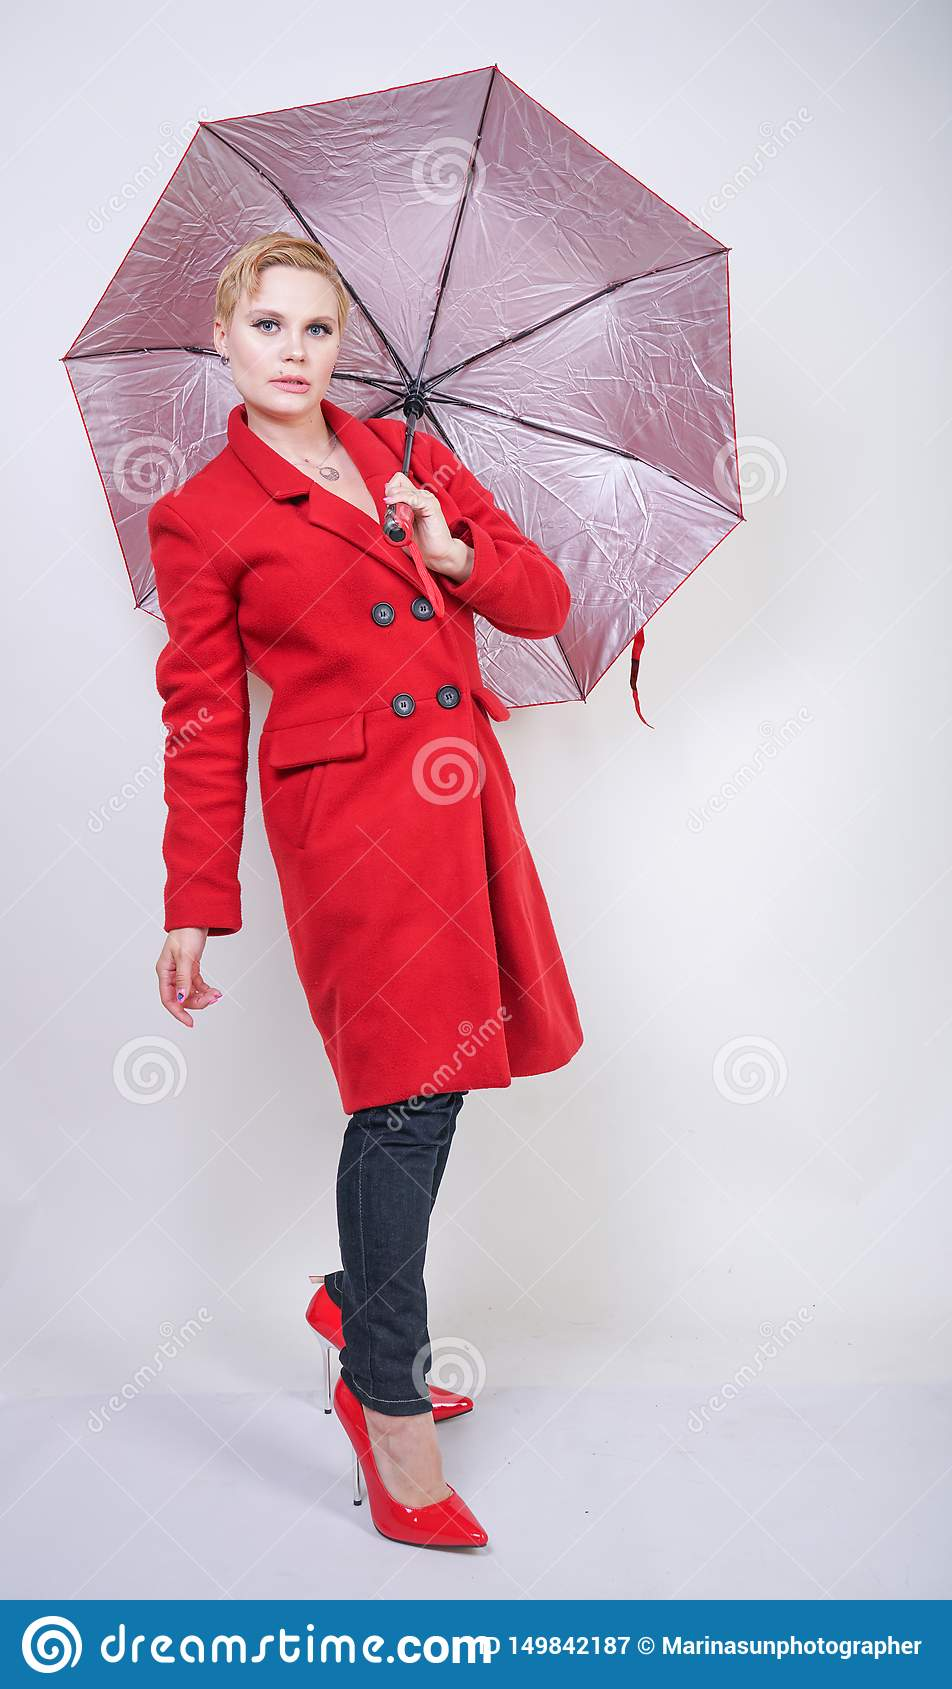 Cute short hair chubby girl in a modern city wool coat holding a red umbrella and posing on a white background in the Studio alone